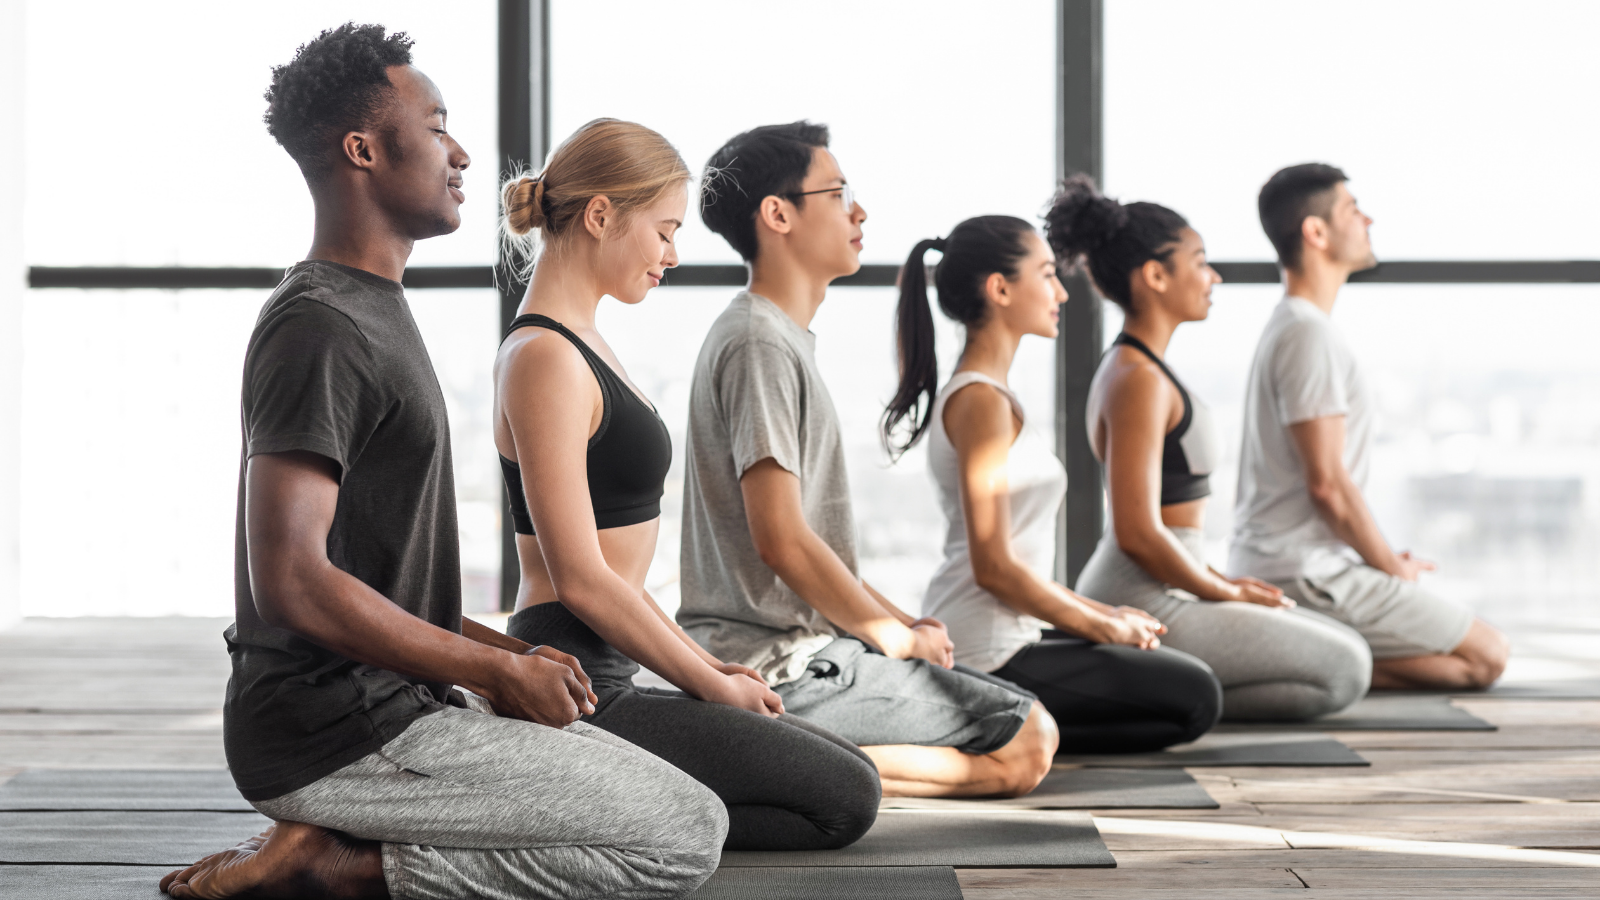 multiracial men and woman practicing yoga and meditating together in modern studio in celebration of International Yoga Day